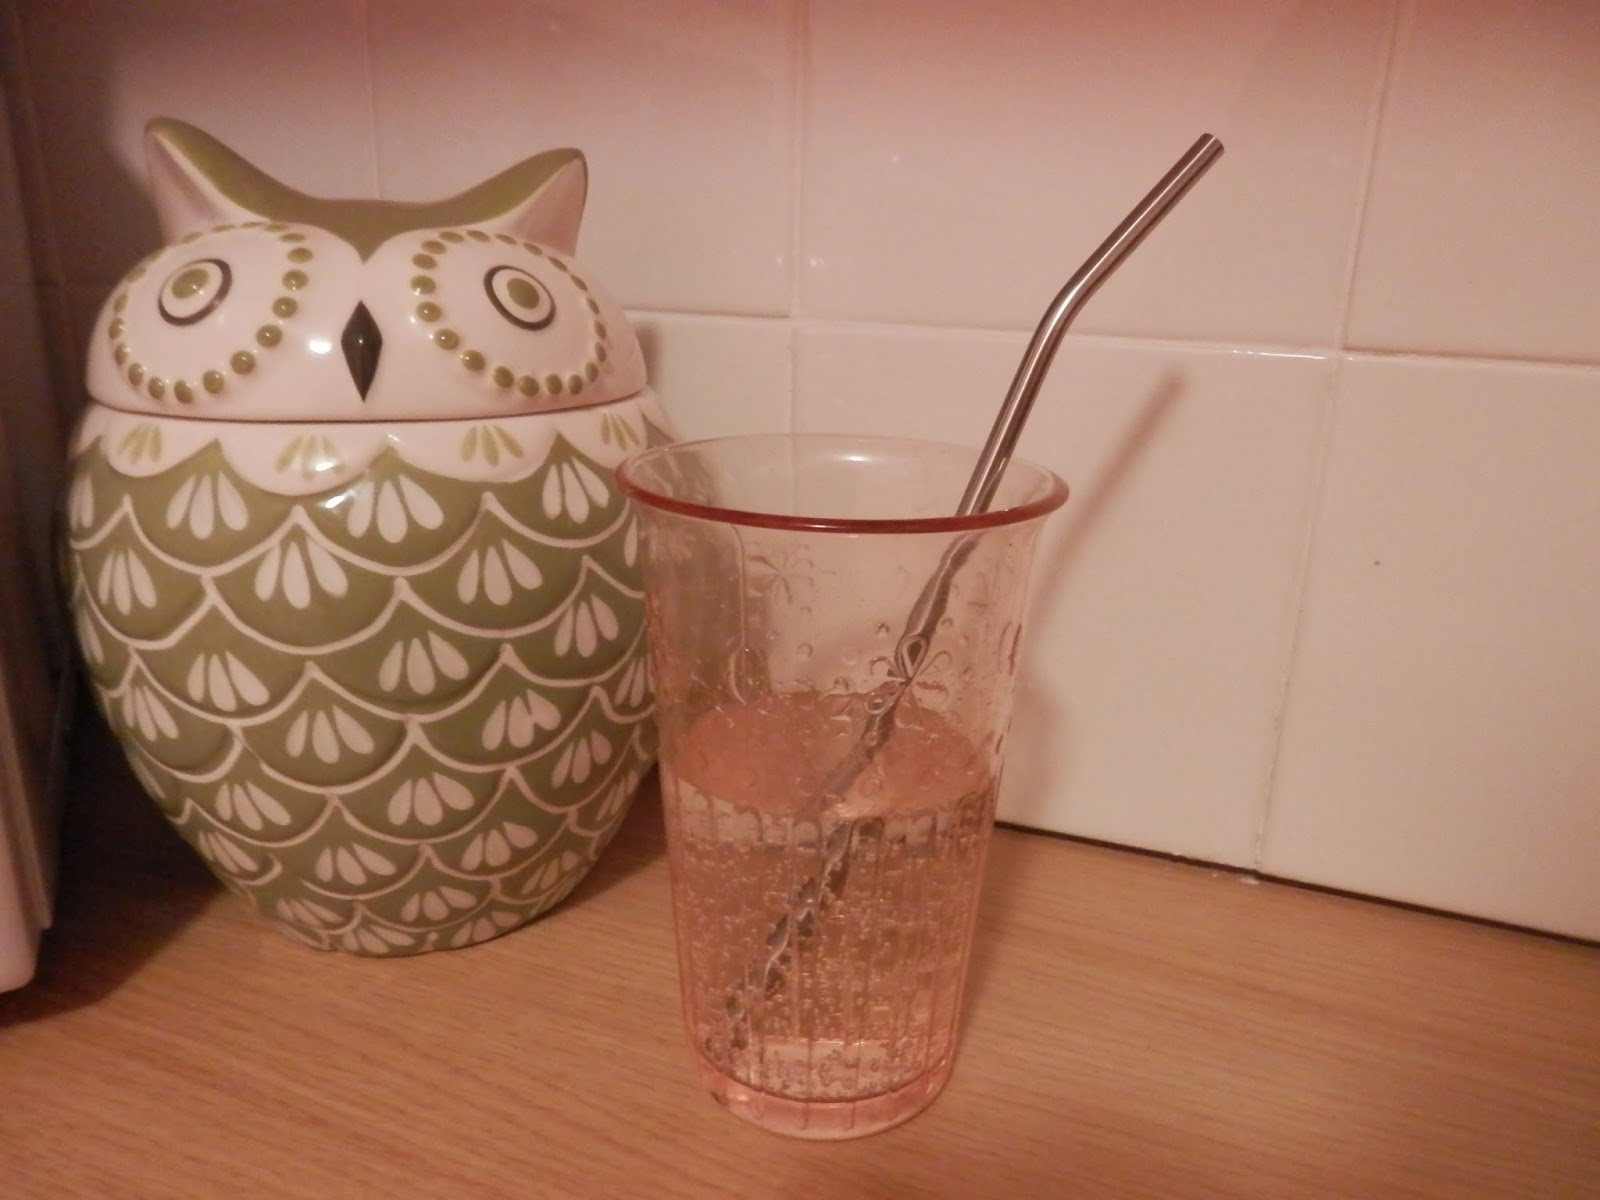 Stainless Steel Drinking Straw secondhandsusie.blogspot.co.uk